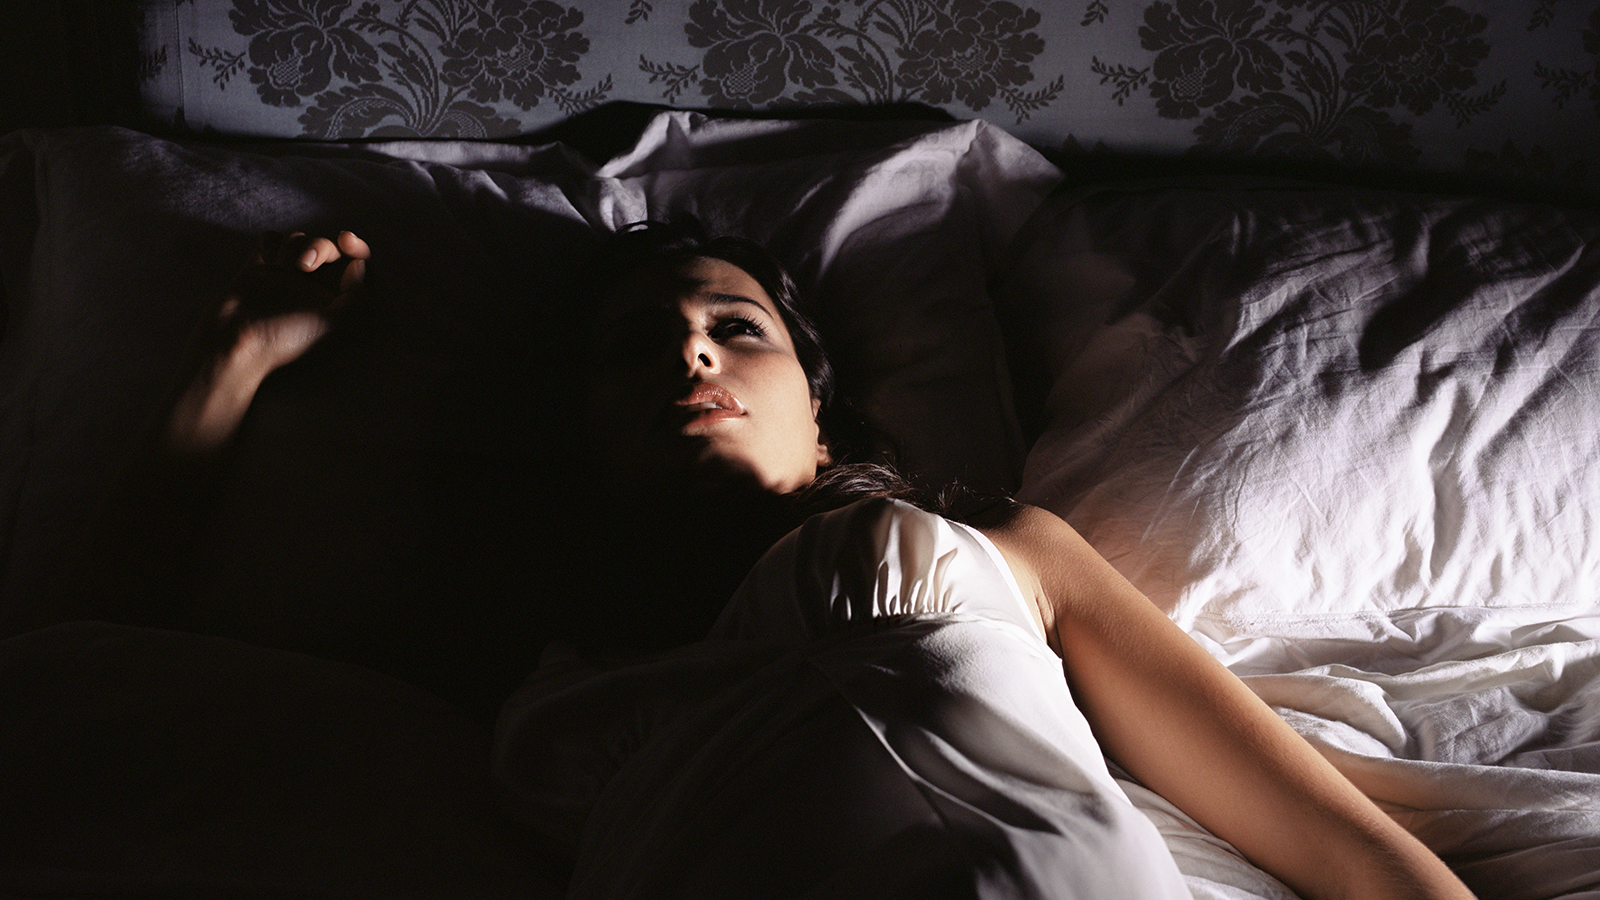 If you sleep in this position, you will have more nightmares